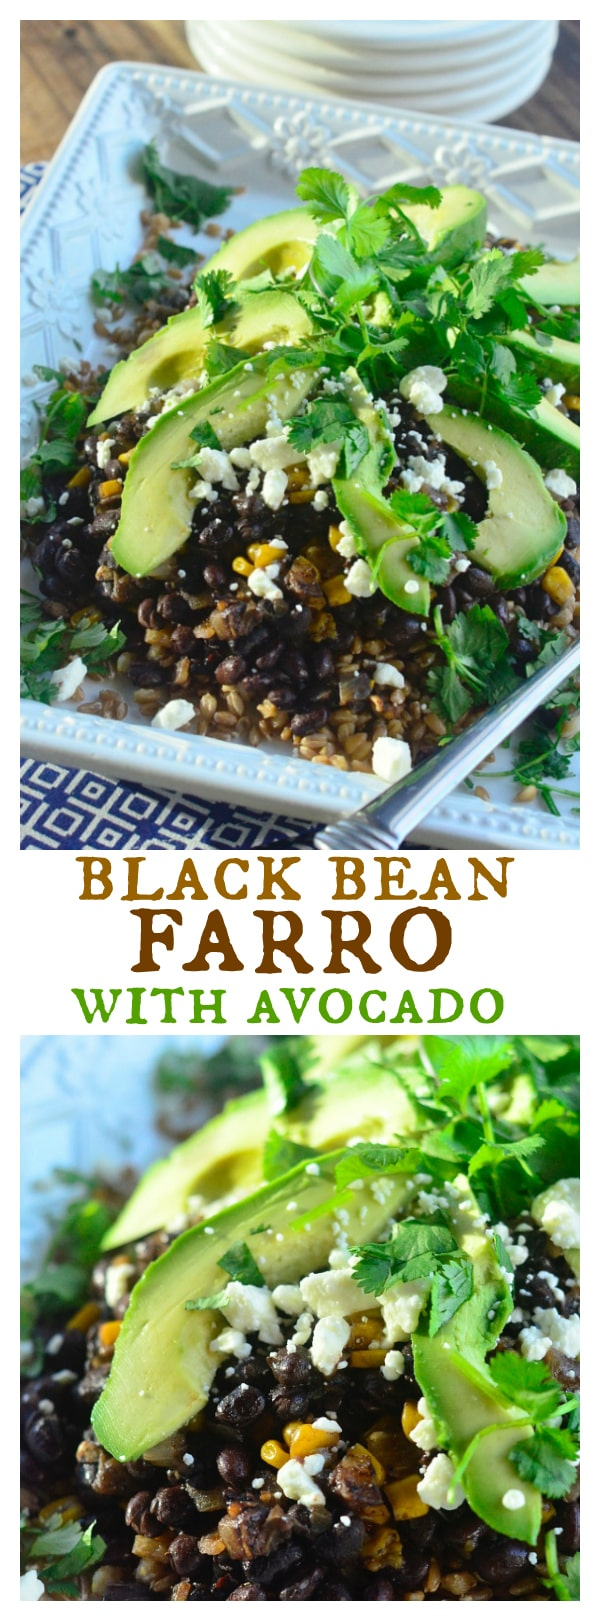 Black Bean Farro with Avocado